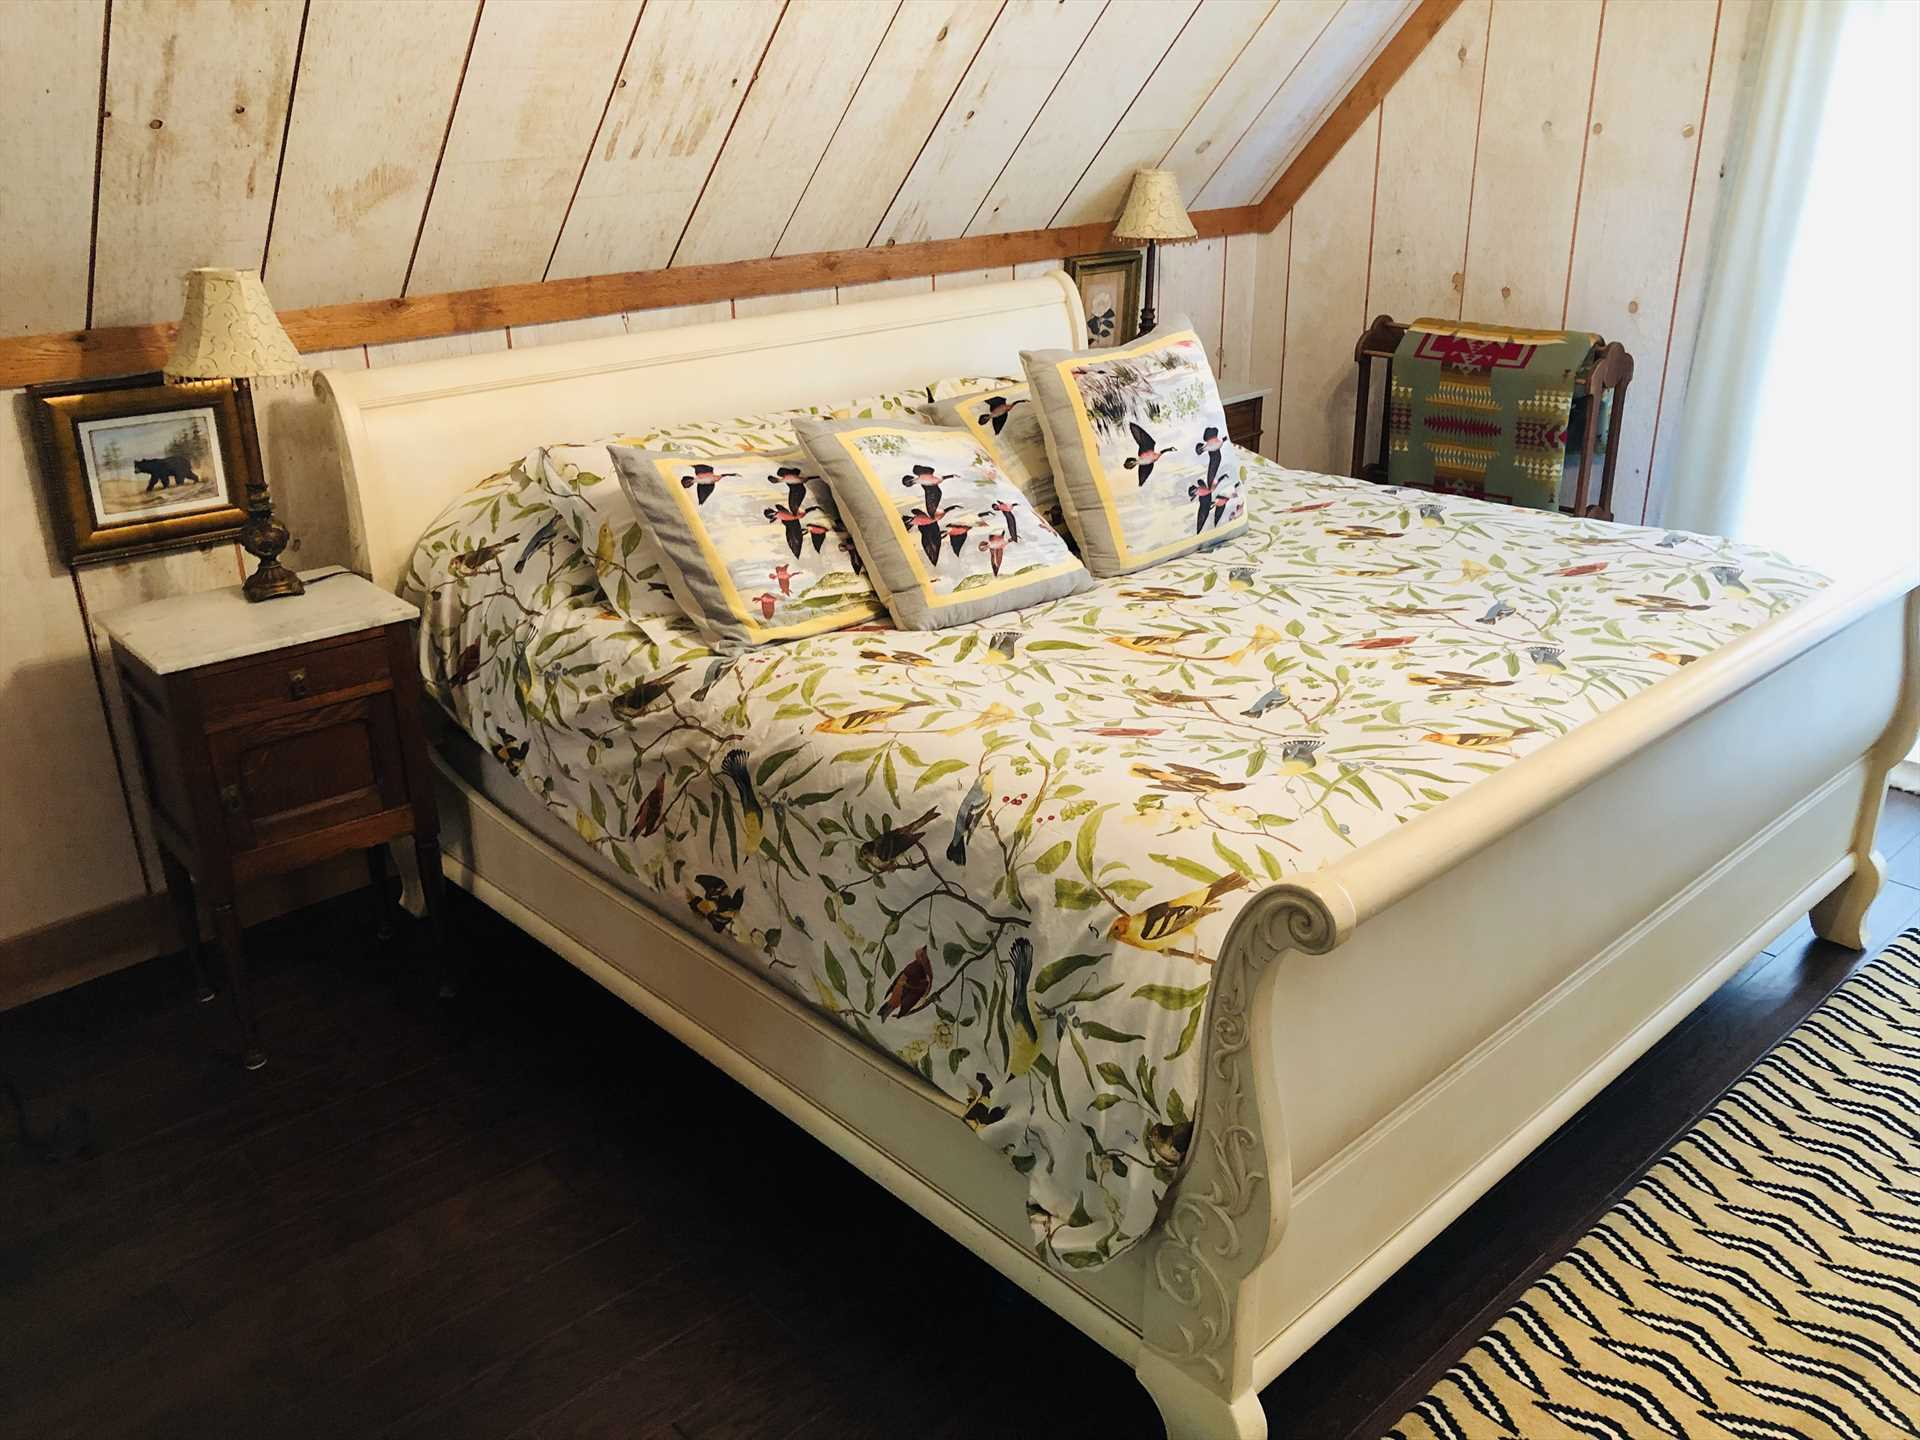 The vintage sleigh-style bed is fully dressed with soft, quality linens and throw pillows.